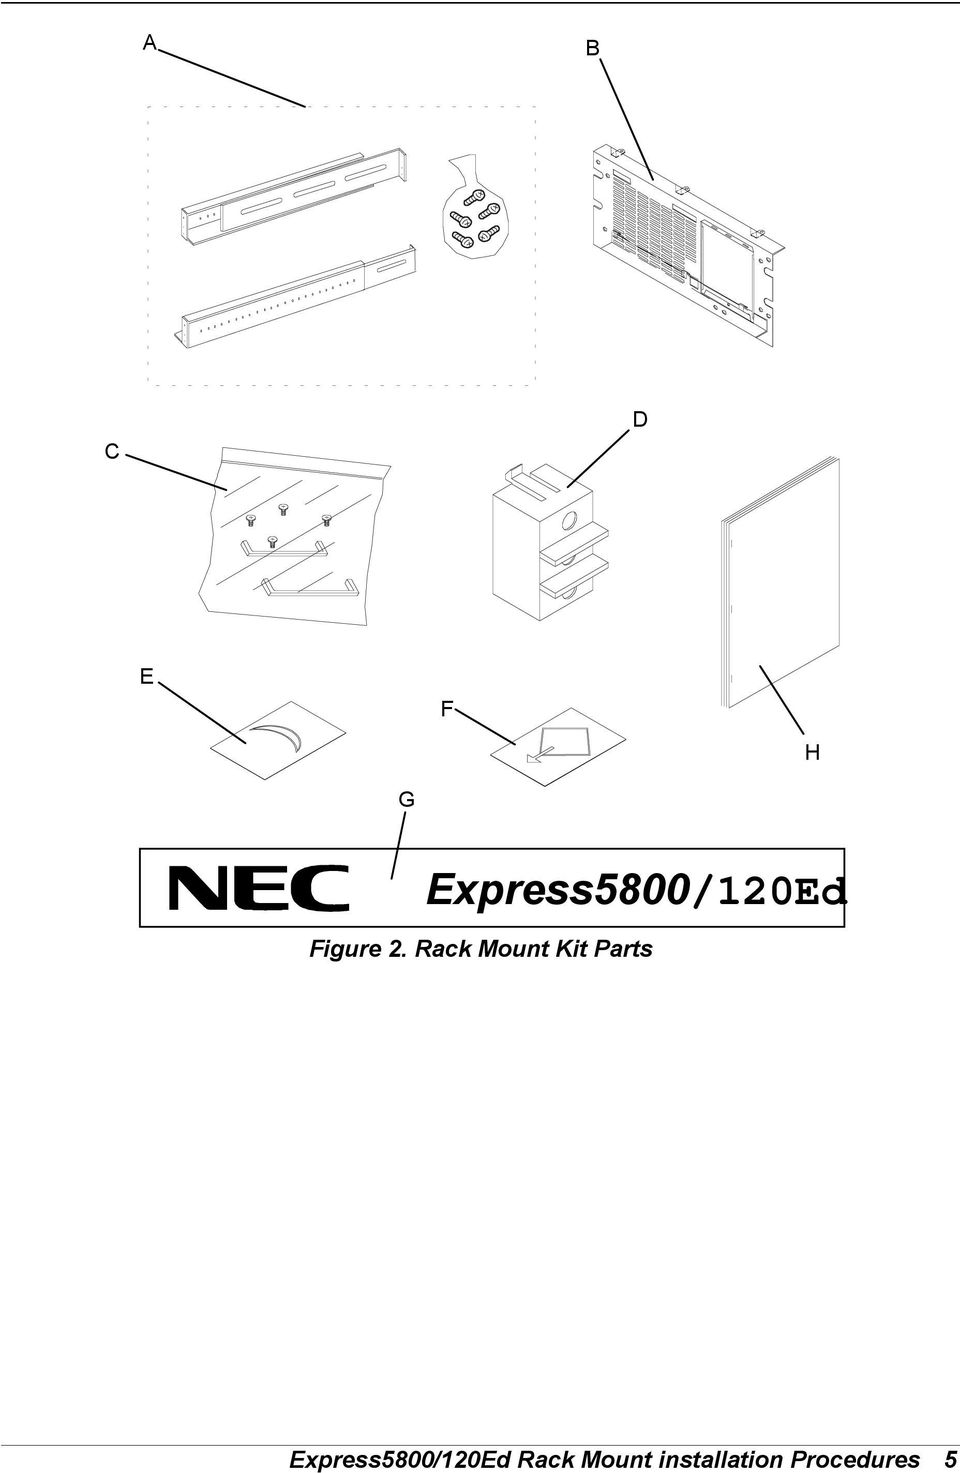 Rack Mount Kit Parts